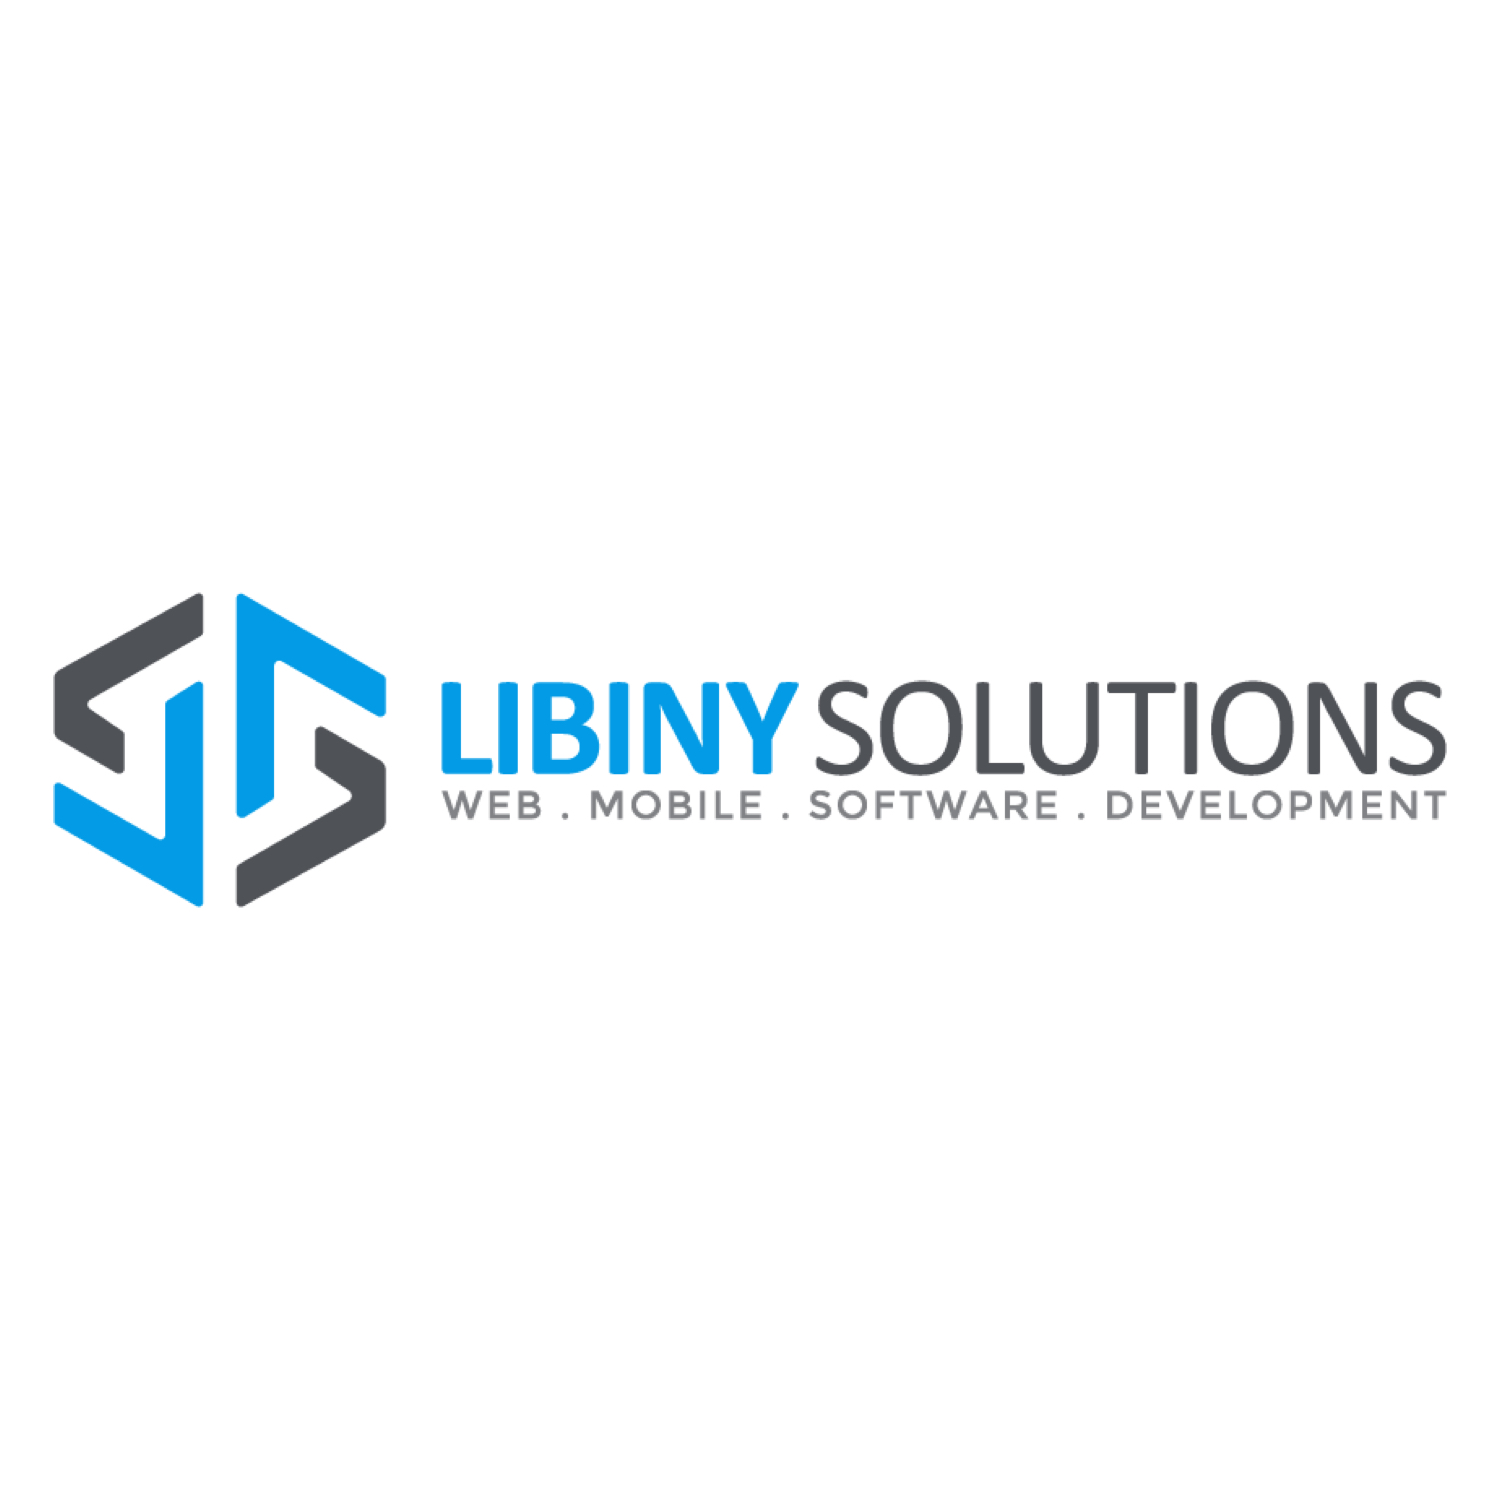 LIBINY SOLUTIONS   LIBINY SOLUTIONS, LLC provides custom transportation logistics systems, mobile apps and professional web-based services, ranging from custom web designs to dynamic websites. Providing the ability to integrate clear, functional and creative interfaces with technical, business solutions, LIBINY SOLUTIONS strategically helps build your brand, improve your global web presence and develop more meaningful relationships with your customers.